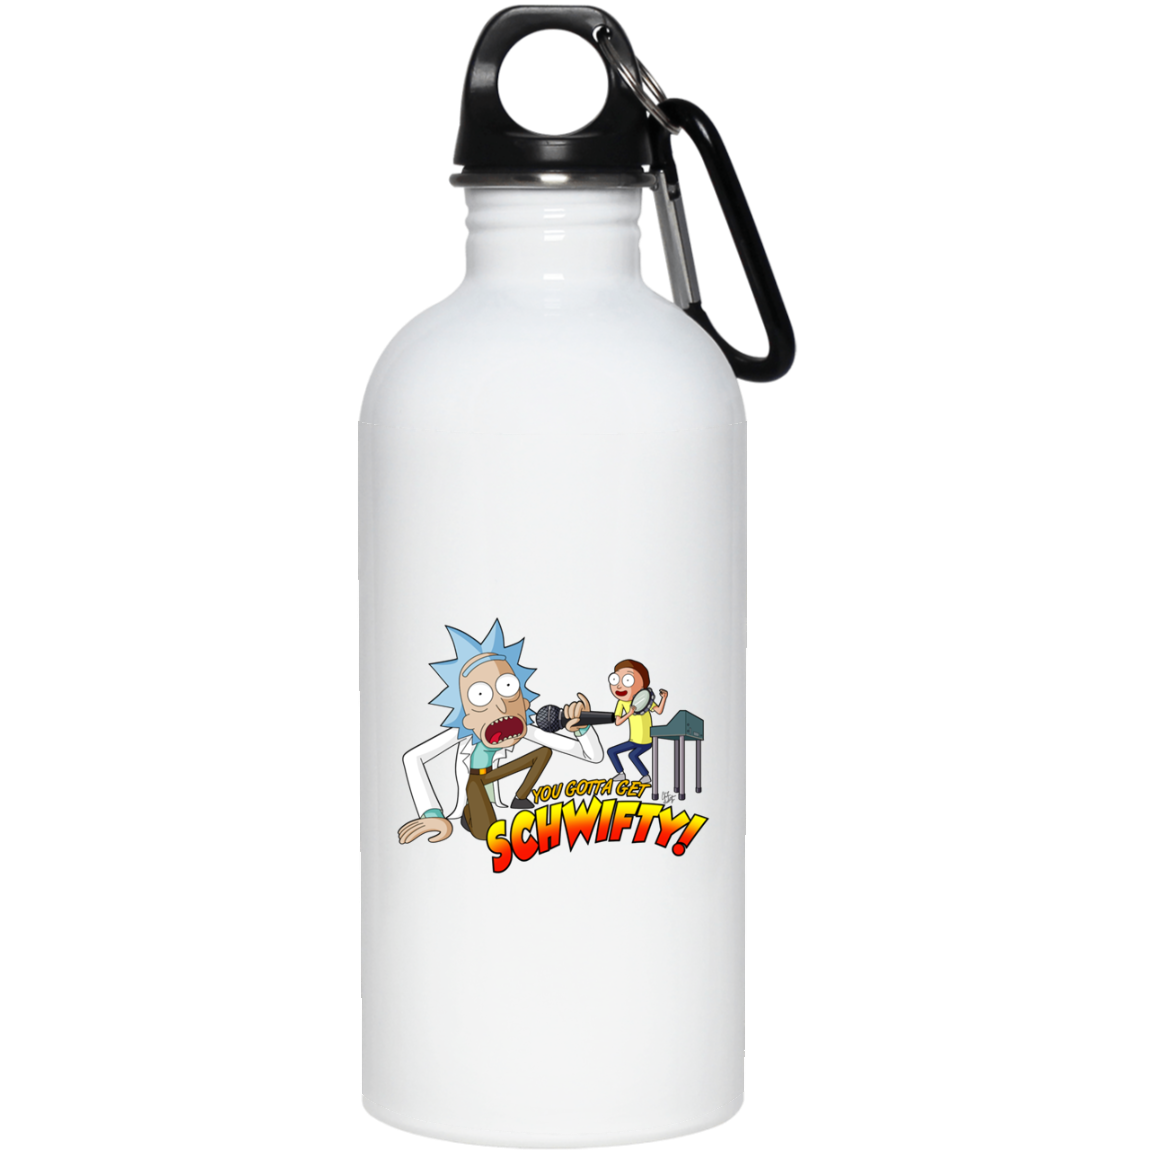 Get Schwifty – Rick And Morty 23663 20 oz. Stainless Steel Water Bottle